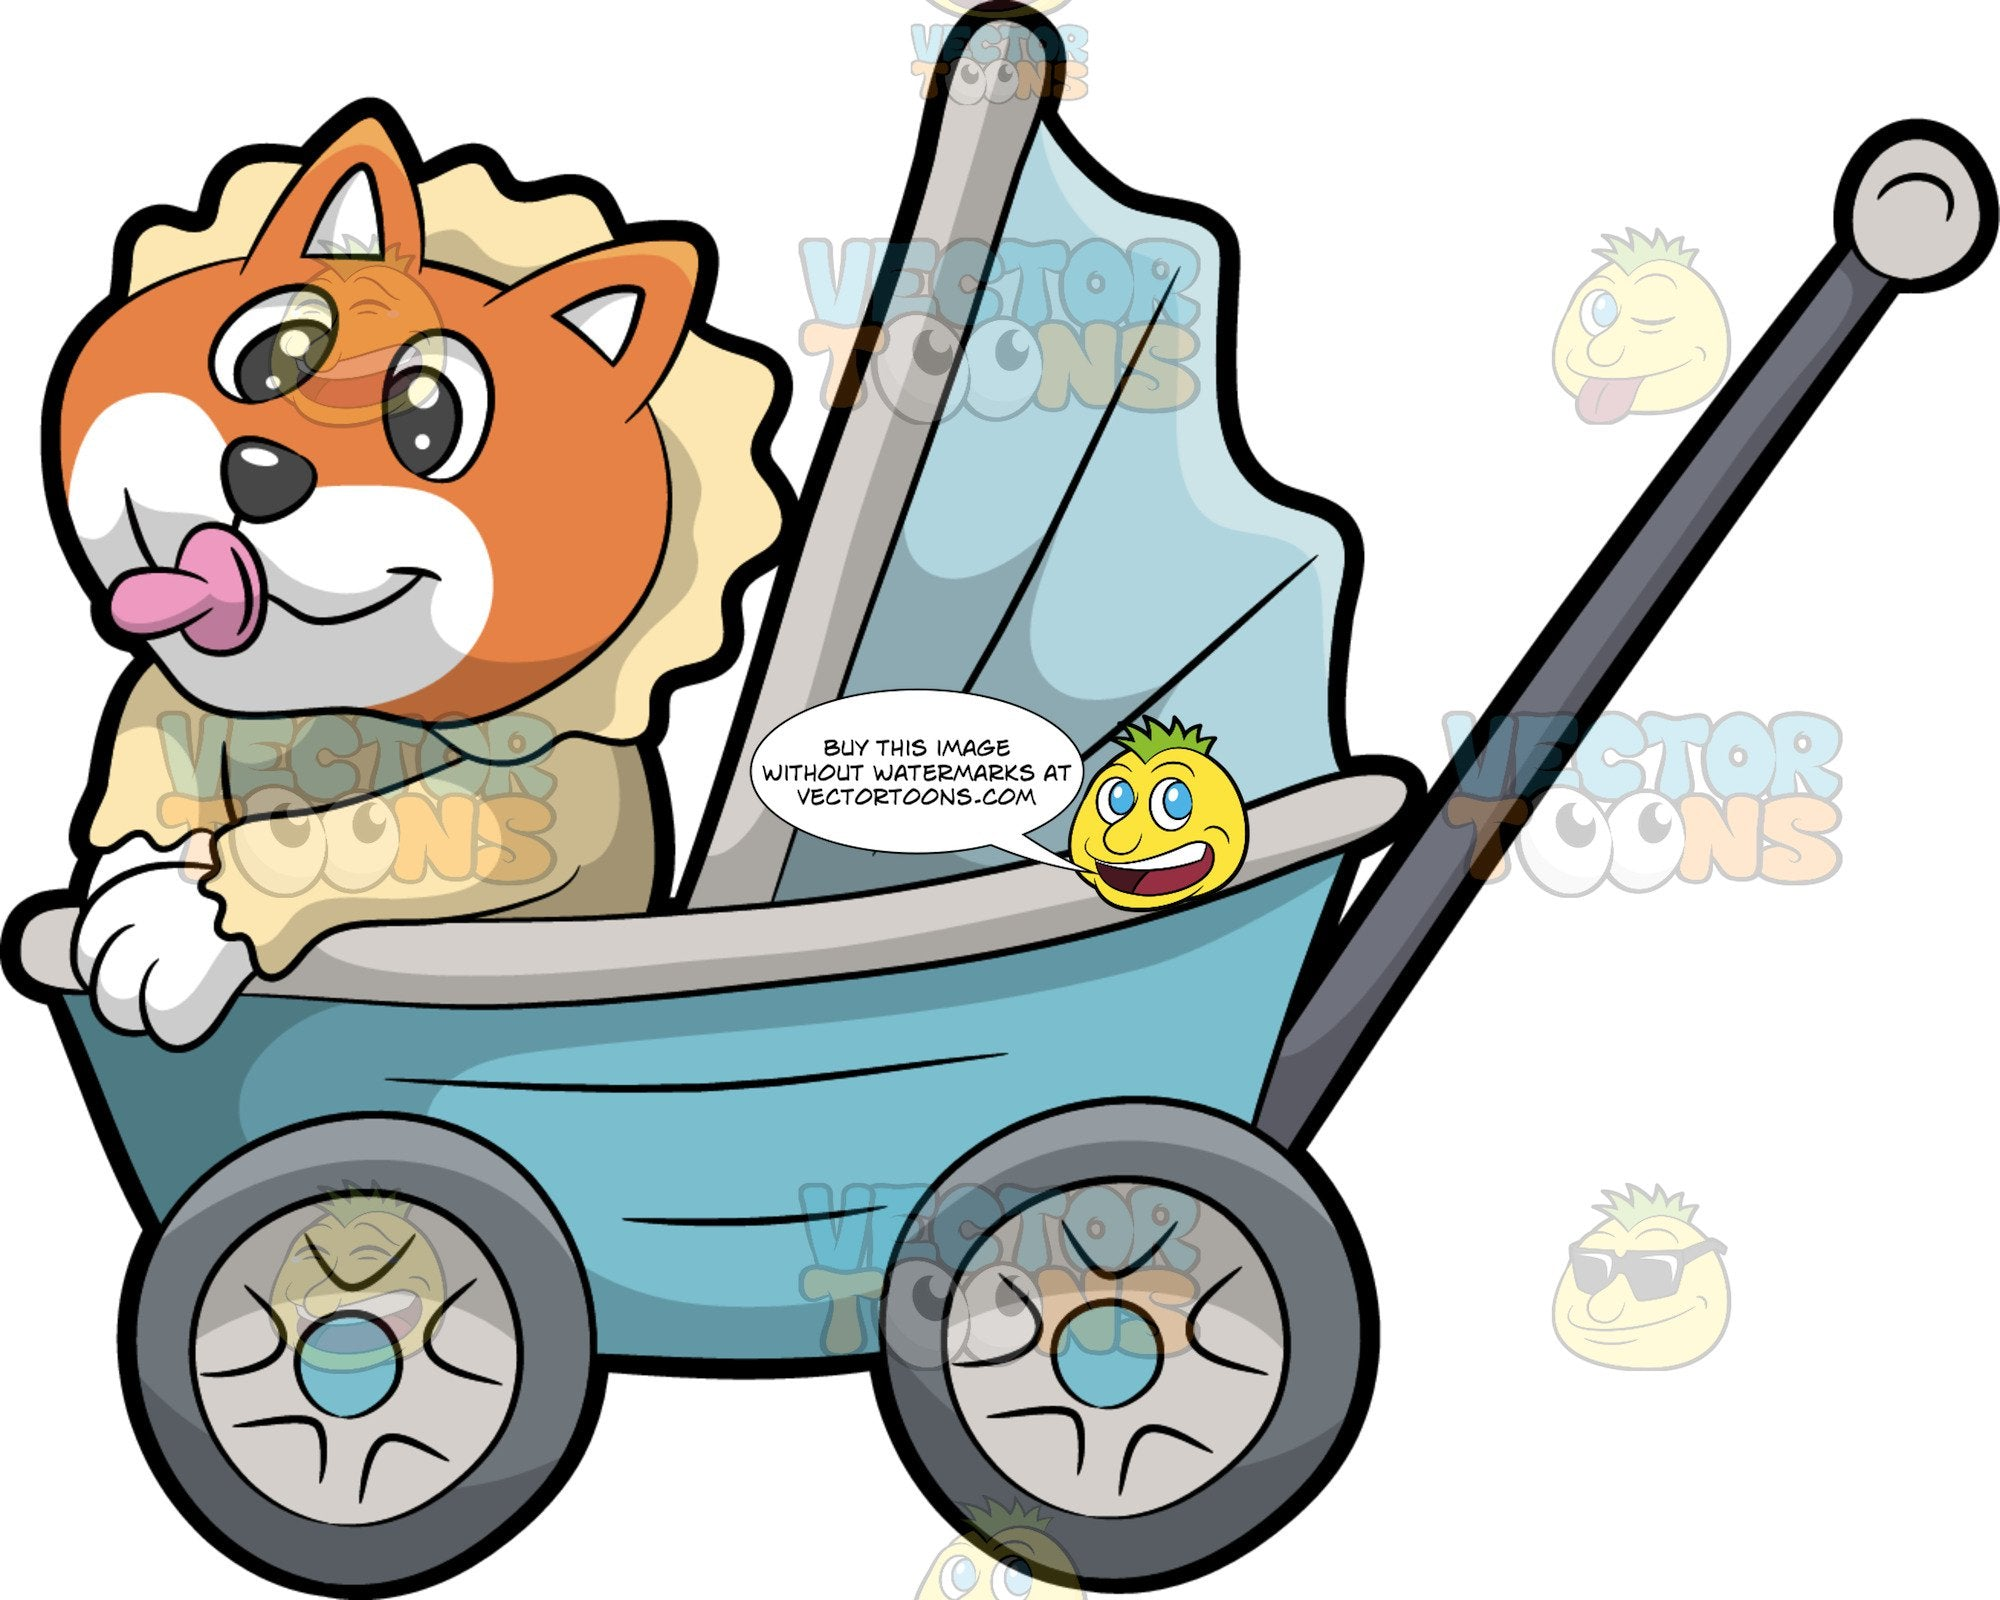 A Cute Baby Dog In A Stoller. A puppy with orange brown and white coat, wearing a beige baby suit with a huge ruffled collar, sucking a pink pacifier while smiling and riding in a light blue and gray wheeled baby stroller